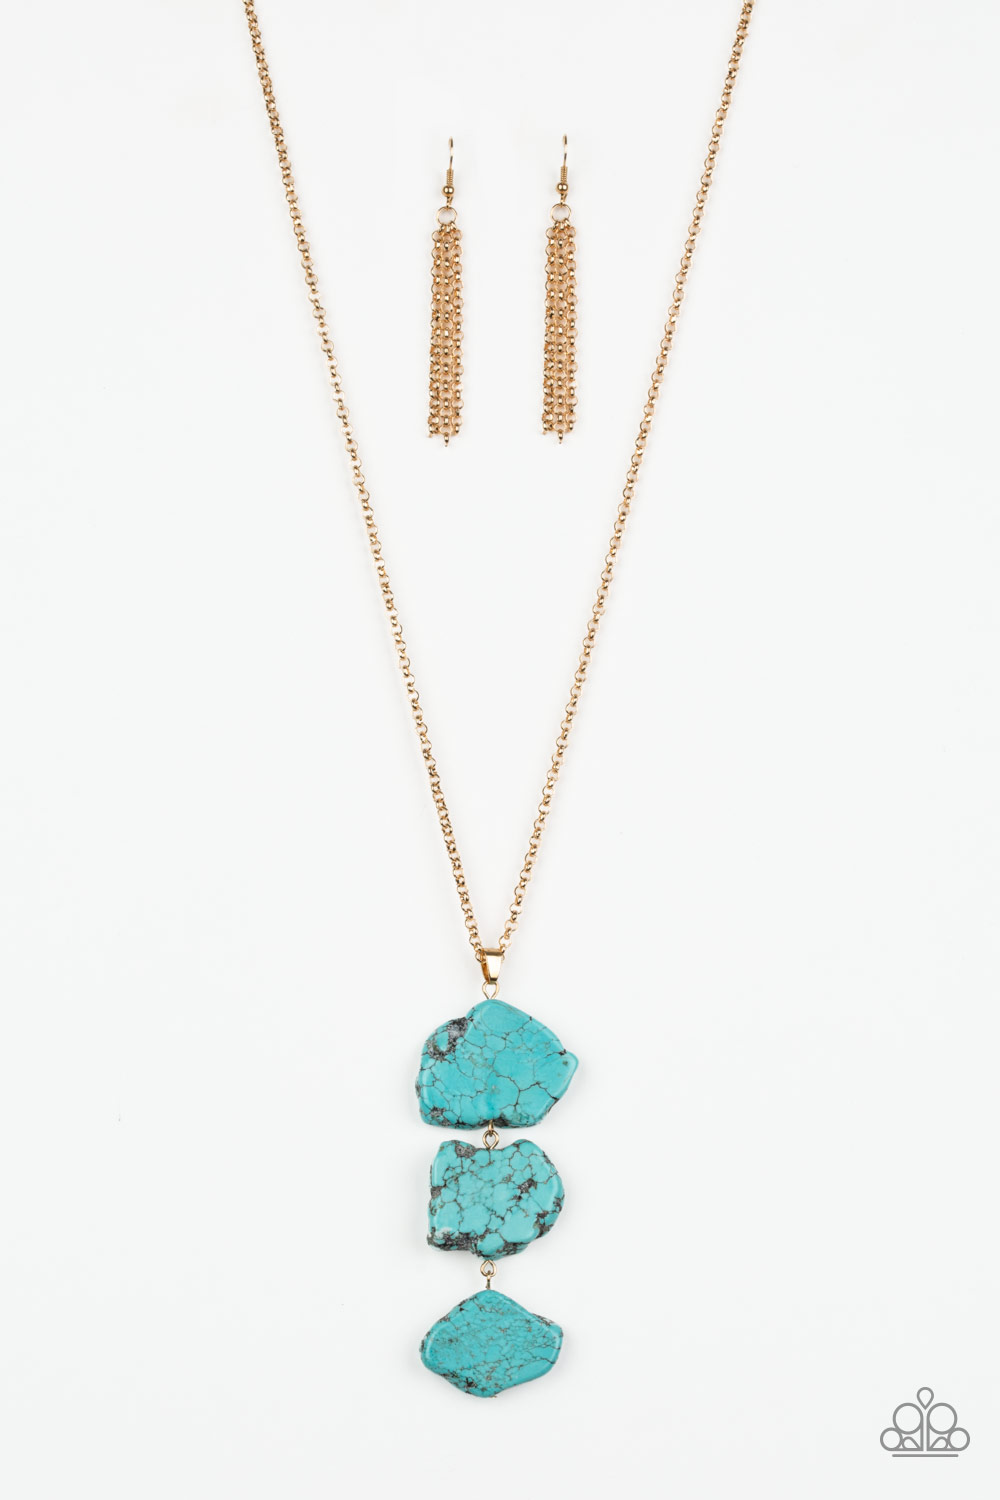 All natural turquoise necklace from Paparazzi $5 my-bling.com item # P2SE-GDBL-074XX